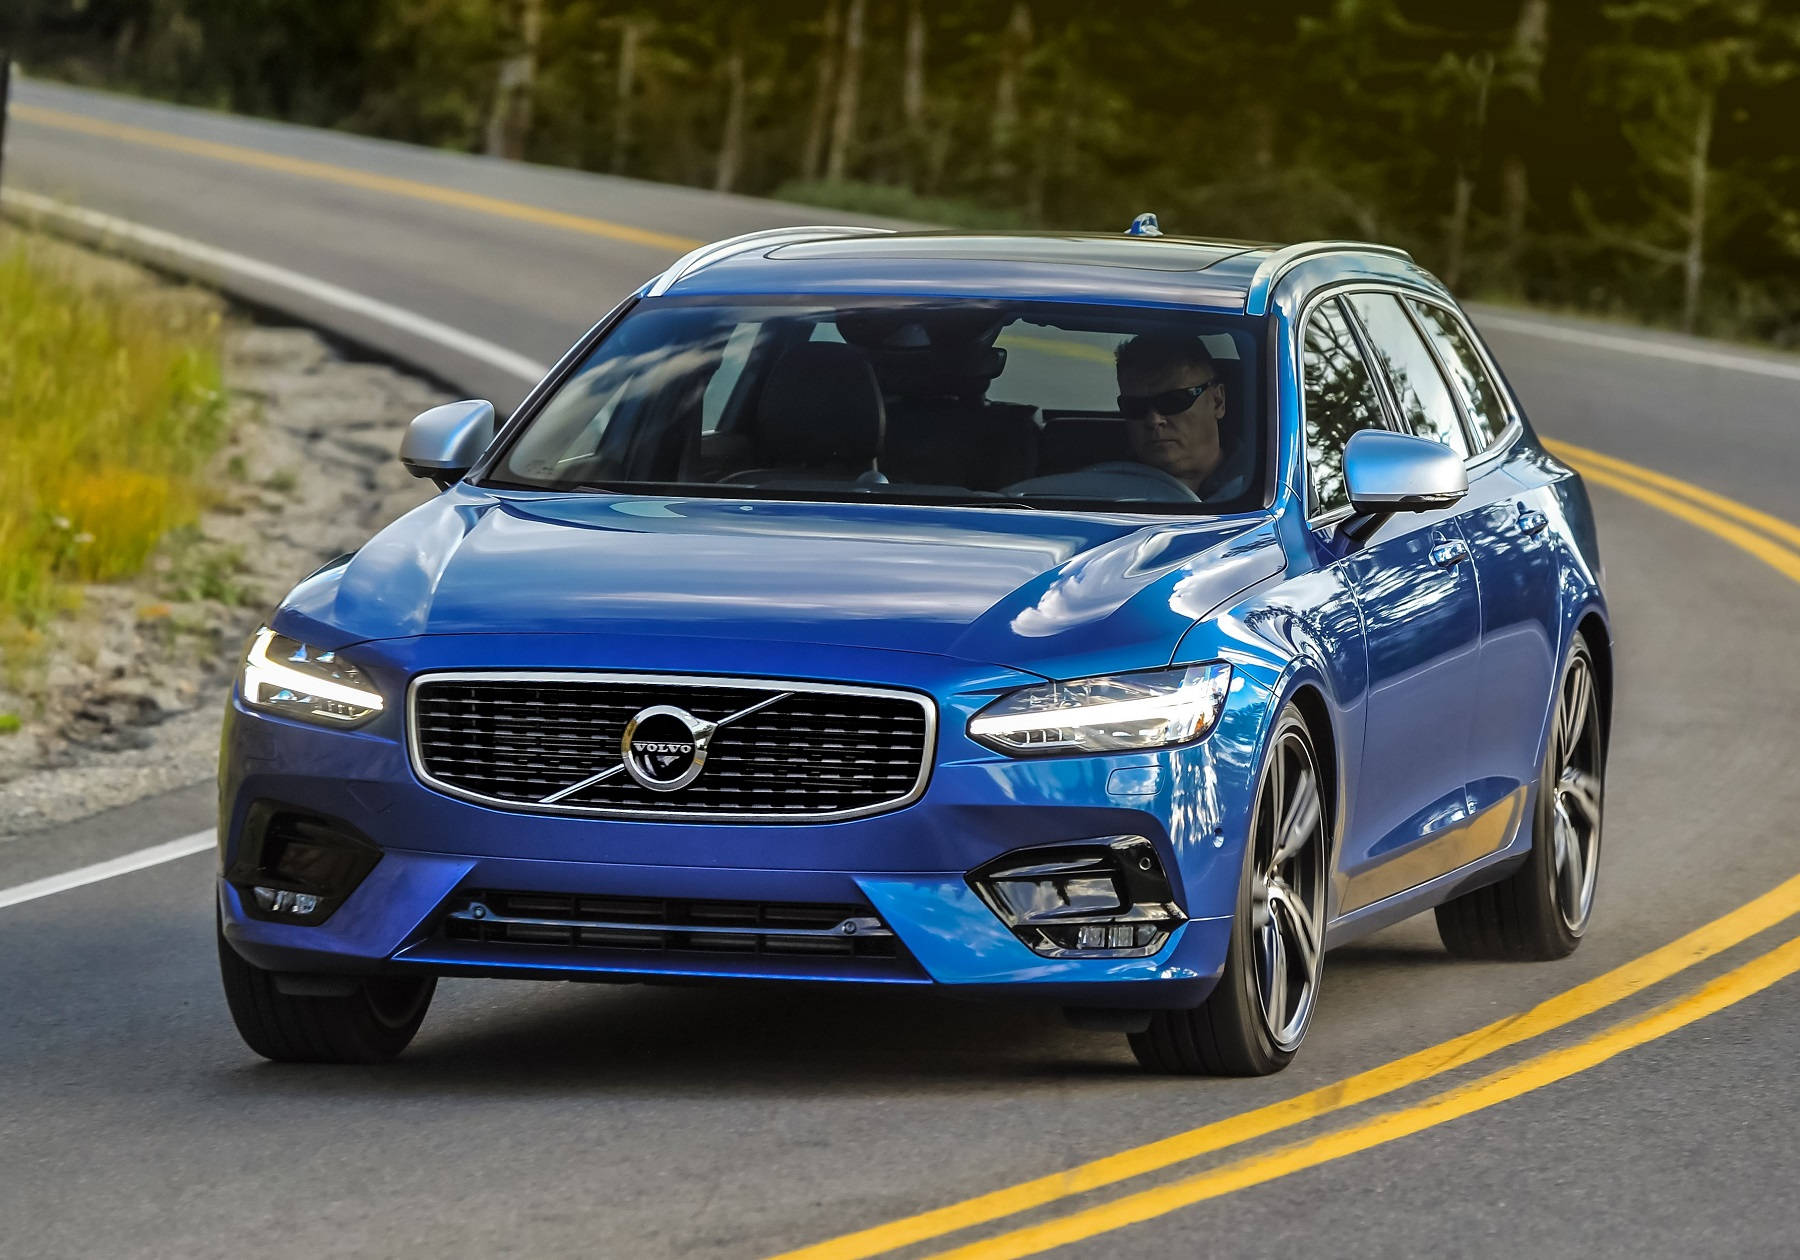 2018 volvo v90 pioneering family wagons new on wheels groovecar. Black Bedroom Furniture Sets. Home Design Ideas